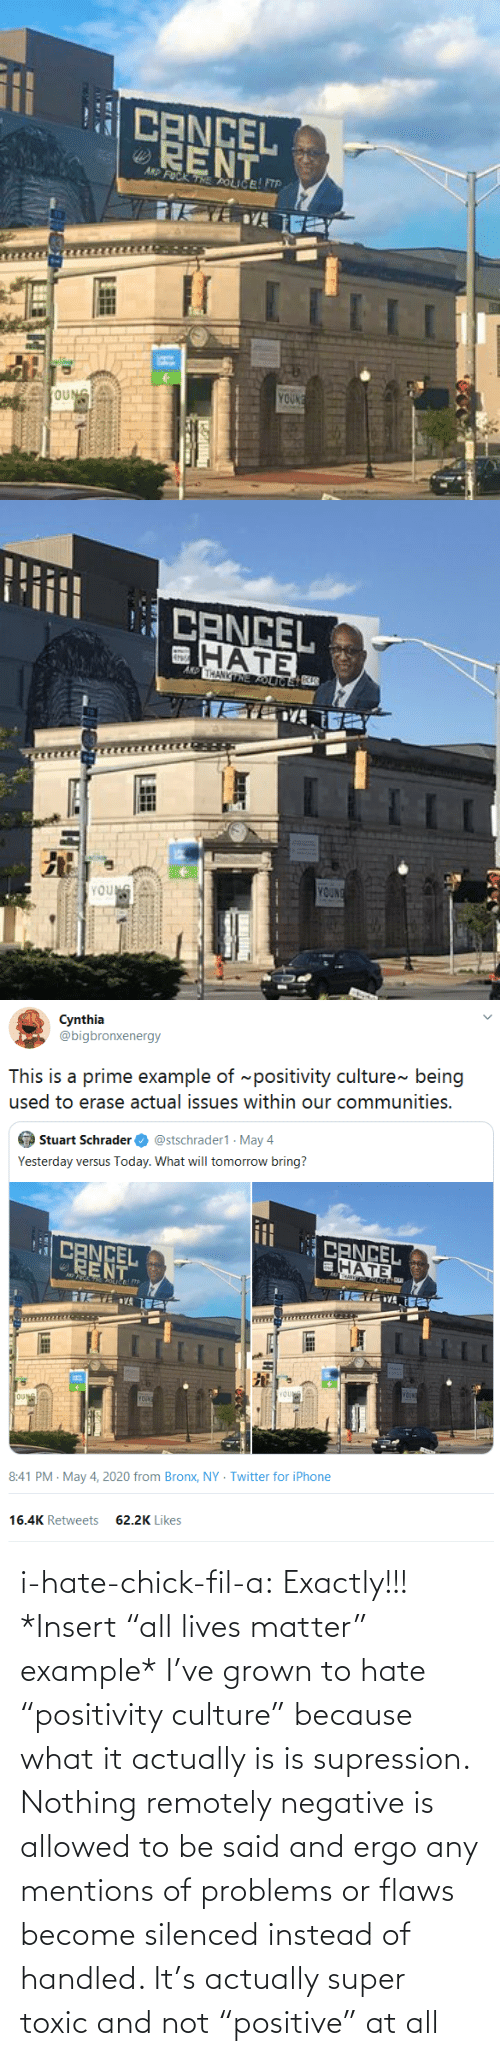 "culture: i-hate-chick-fil-a:   Exactly!!!   *Insert ""all lives matter"" example*   I've grown to hate ""positivity culture"" because what it actually is is supression. Nothing remotely negative is allowed to be said and ergo any mentions of problems or flaws become silenced instead of handled. It's actually super toxic and not ""positive"" at all"